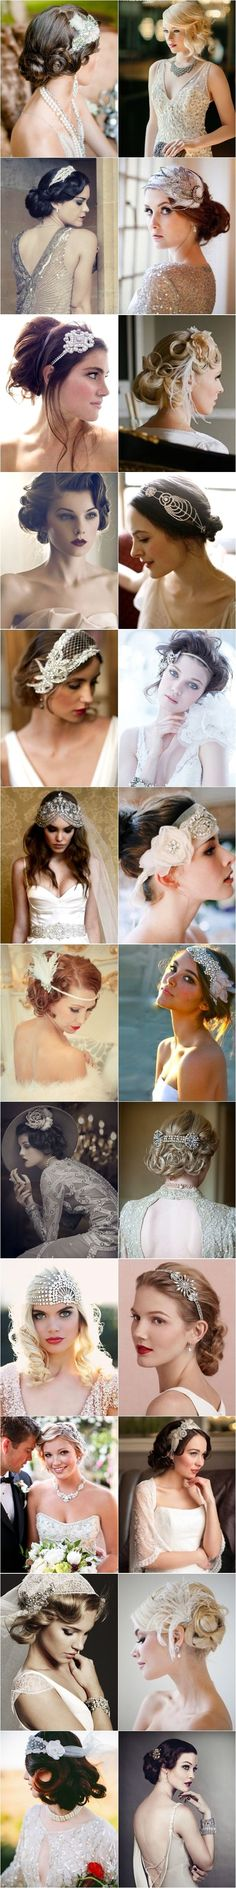 1920s Gatsby Glam Inspired HairstylesWedding Philippines | Wedding Philippines